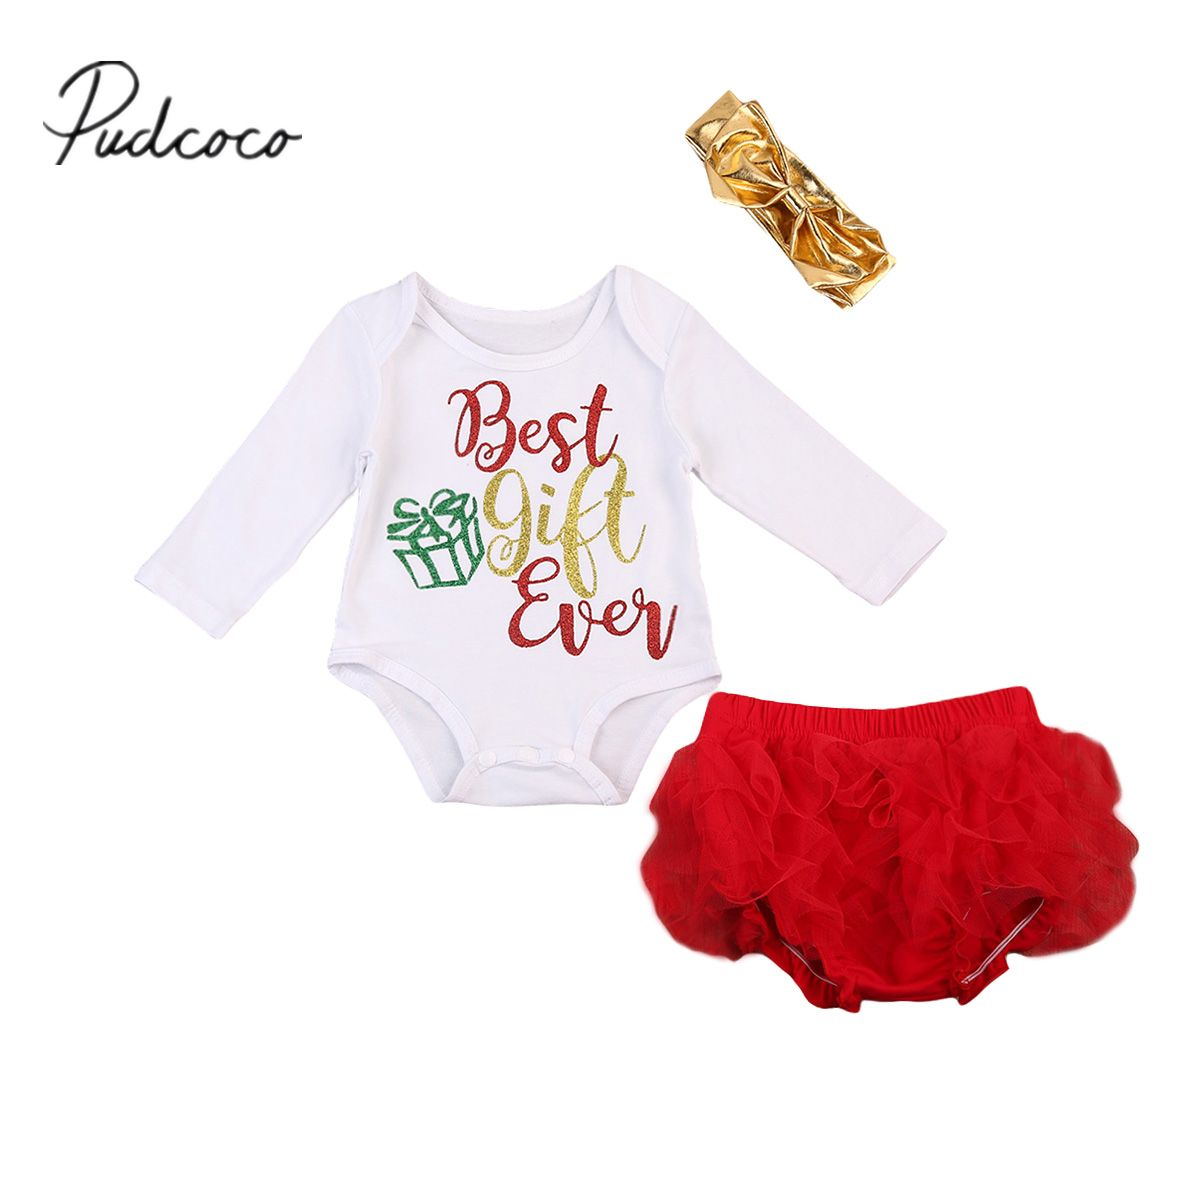 Pudcoco Newborn Baby Christmas Girls Best Gift Ever Top Romper Xmas Tutu Shorts 3pcs Outfits Baby Girl Christmas Outfit Baby Girl Outfits Newborn Xmas Outfits